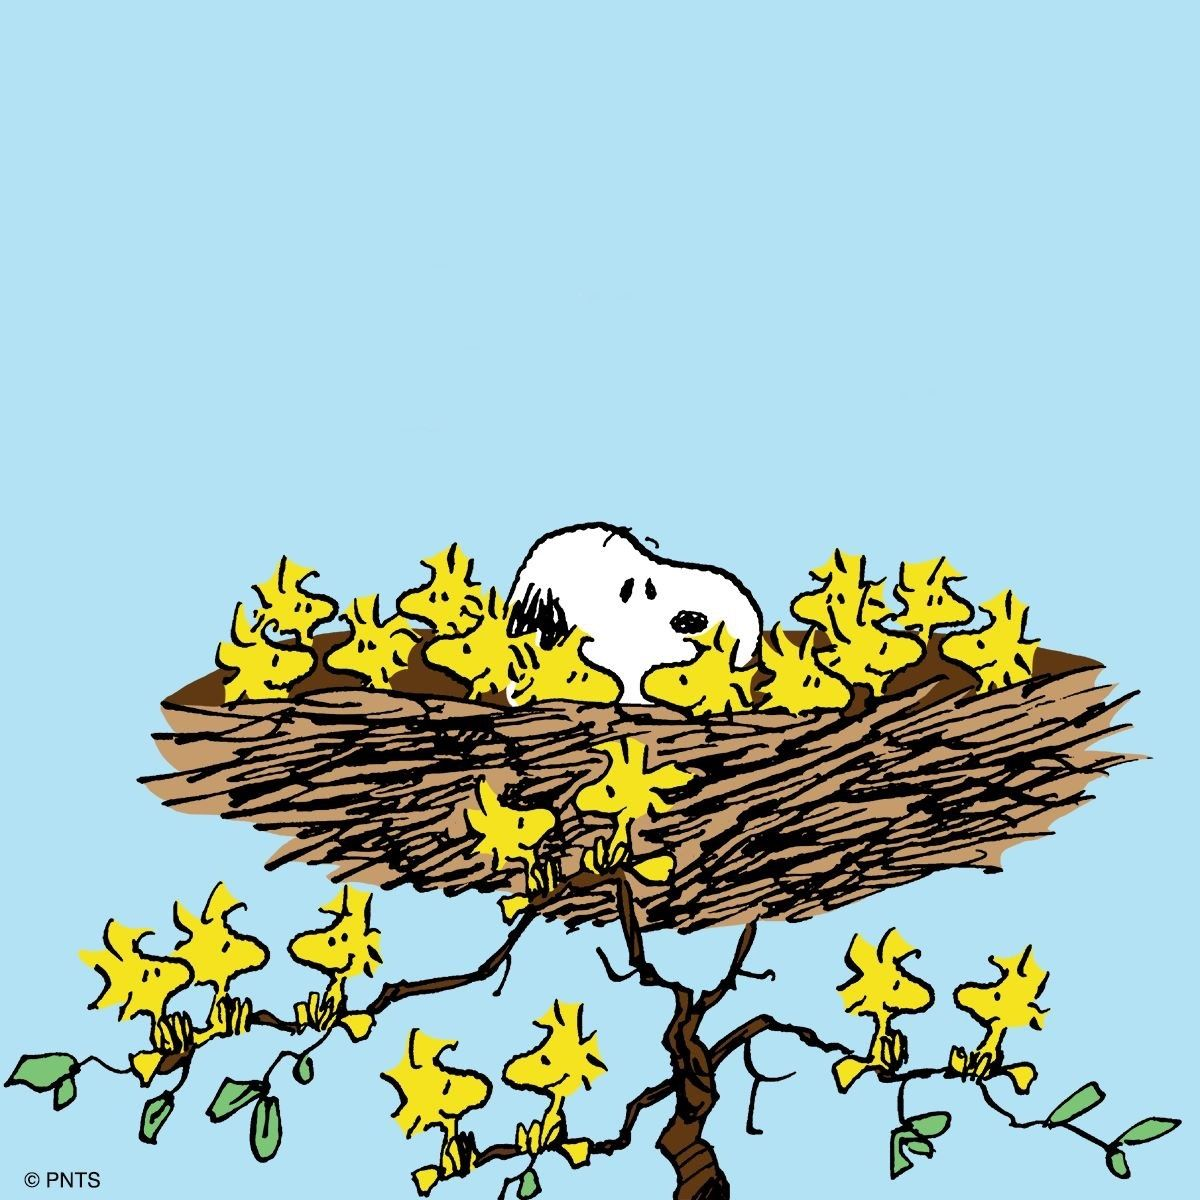 Snoopy, Woodstock and Friends Sleeping in a Giant Bird\'s.